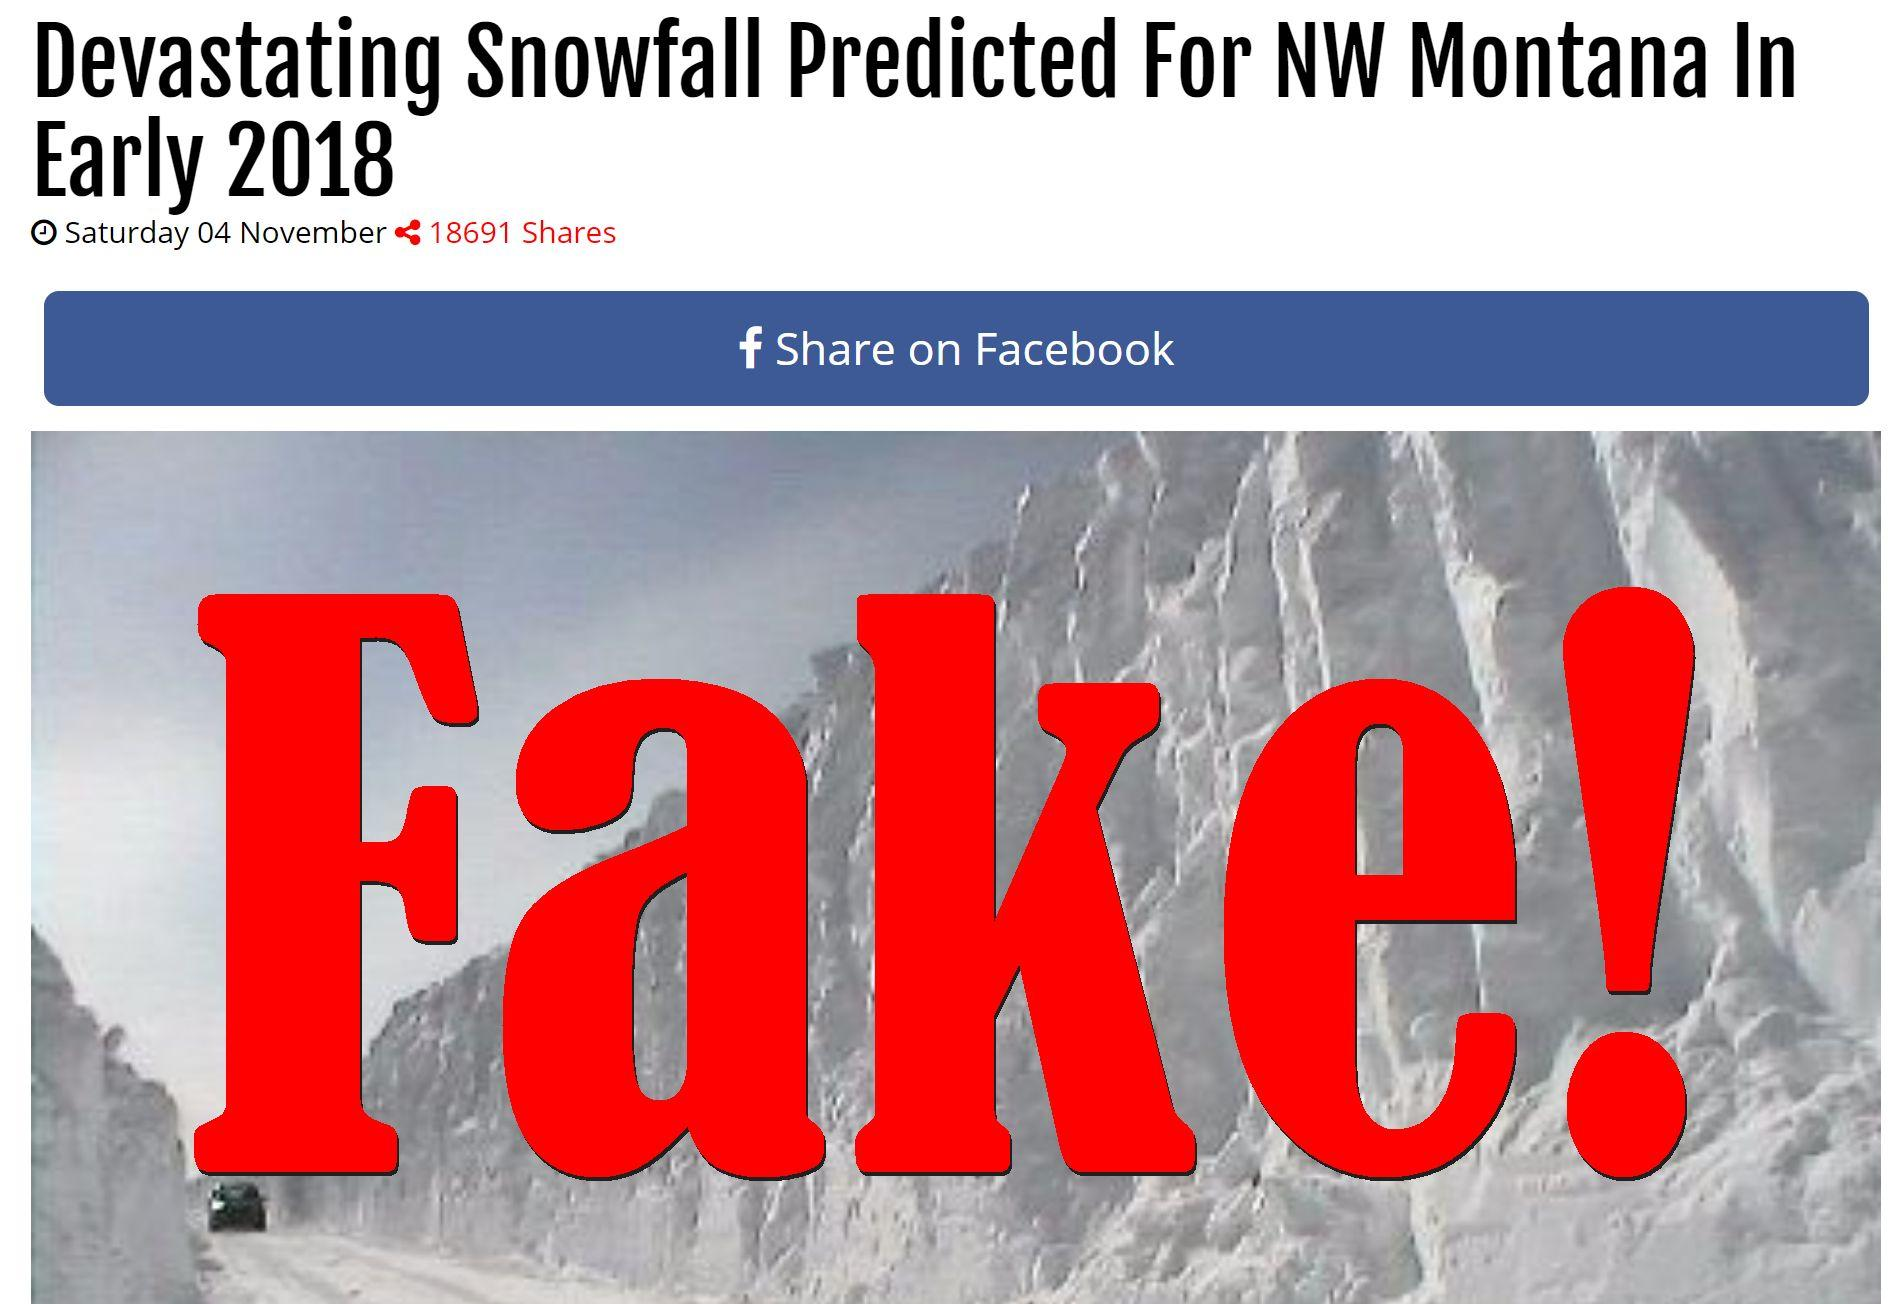 Fake News: Devastating Snowfall NOT Predicted For NW Montana In Early 2018